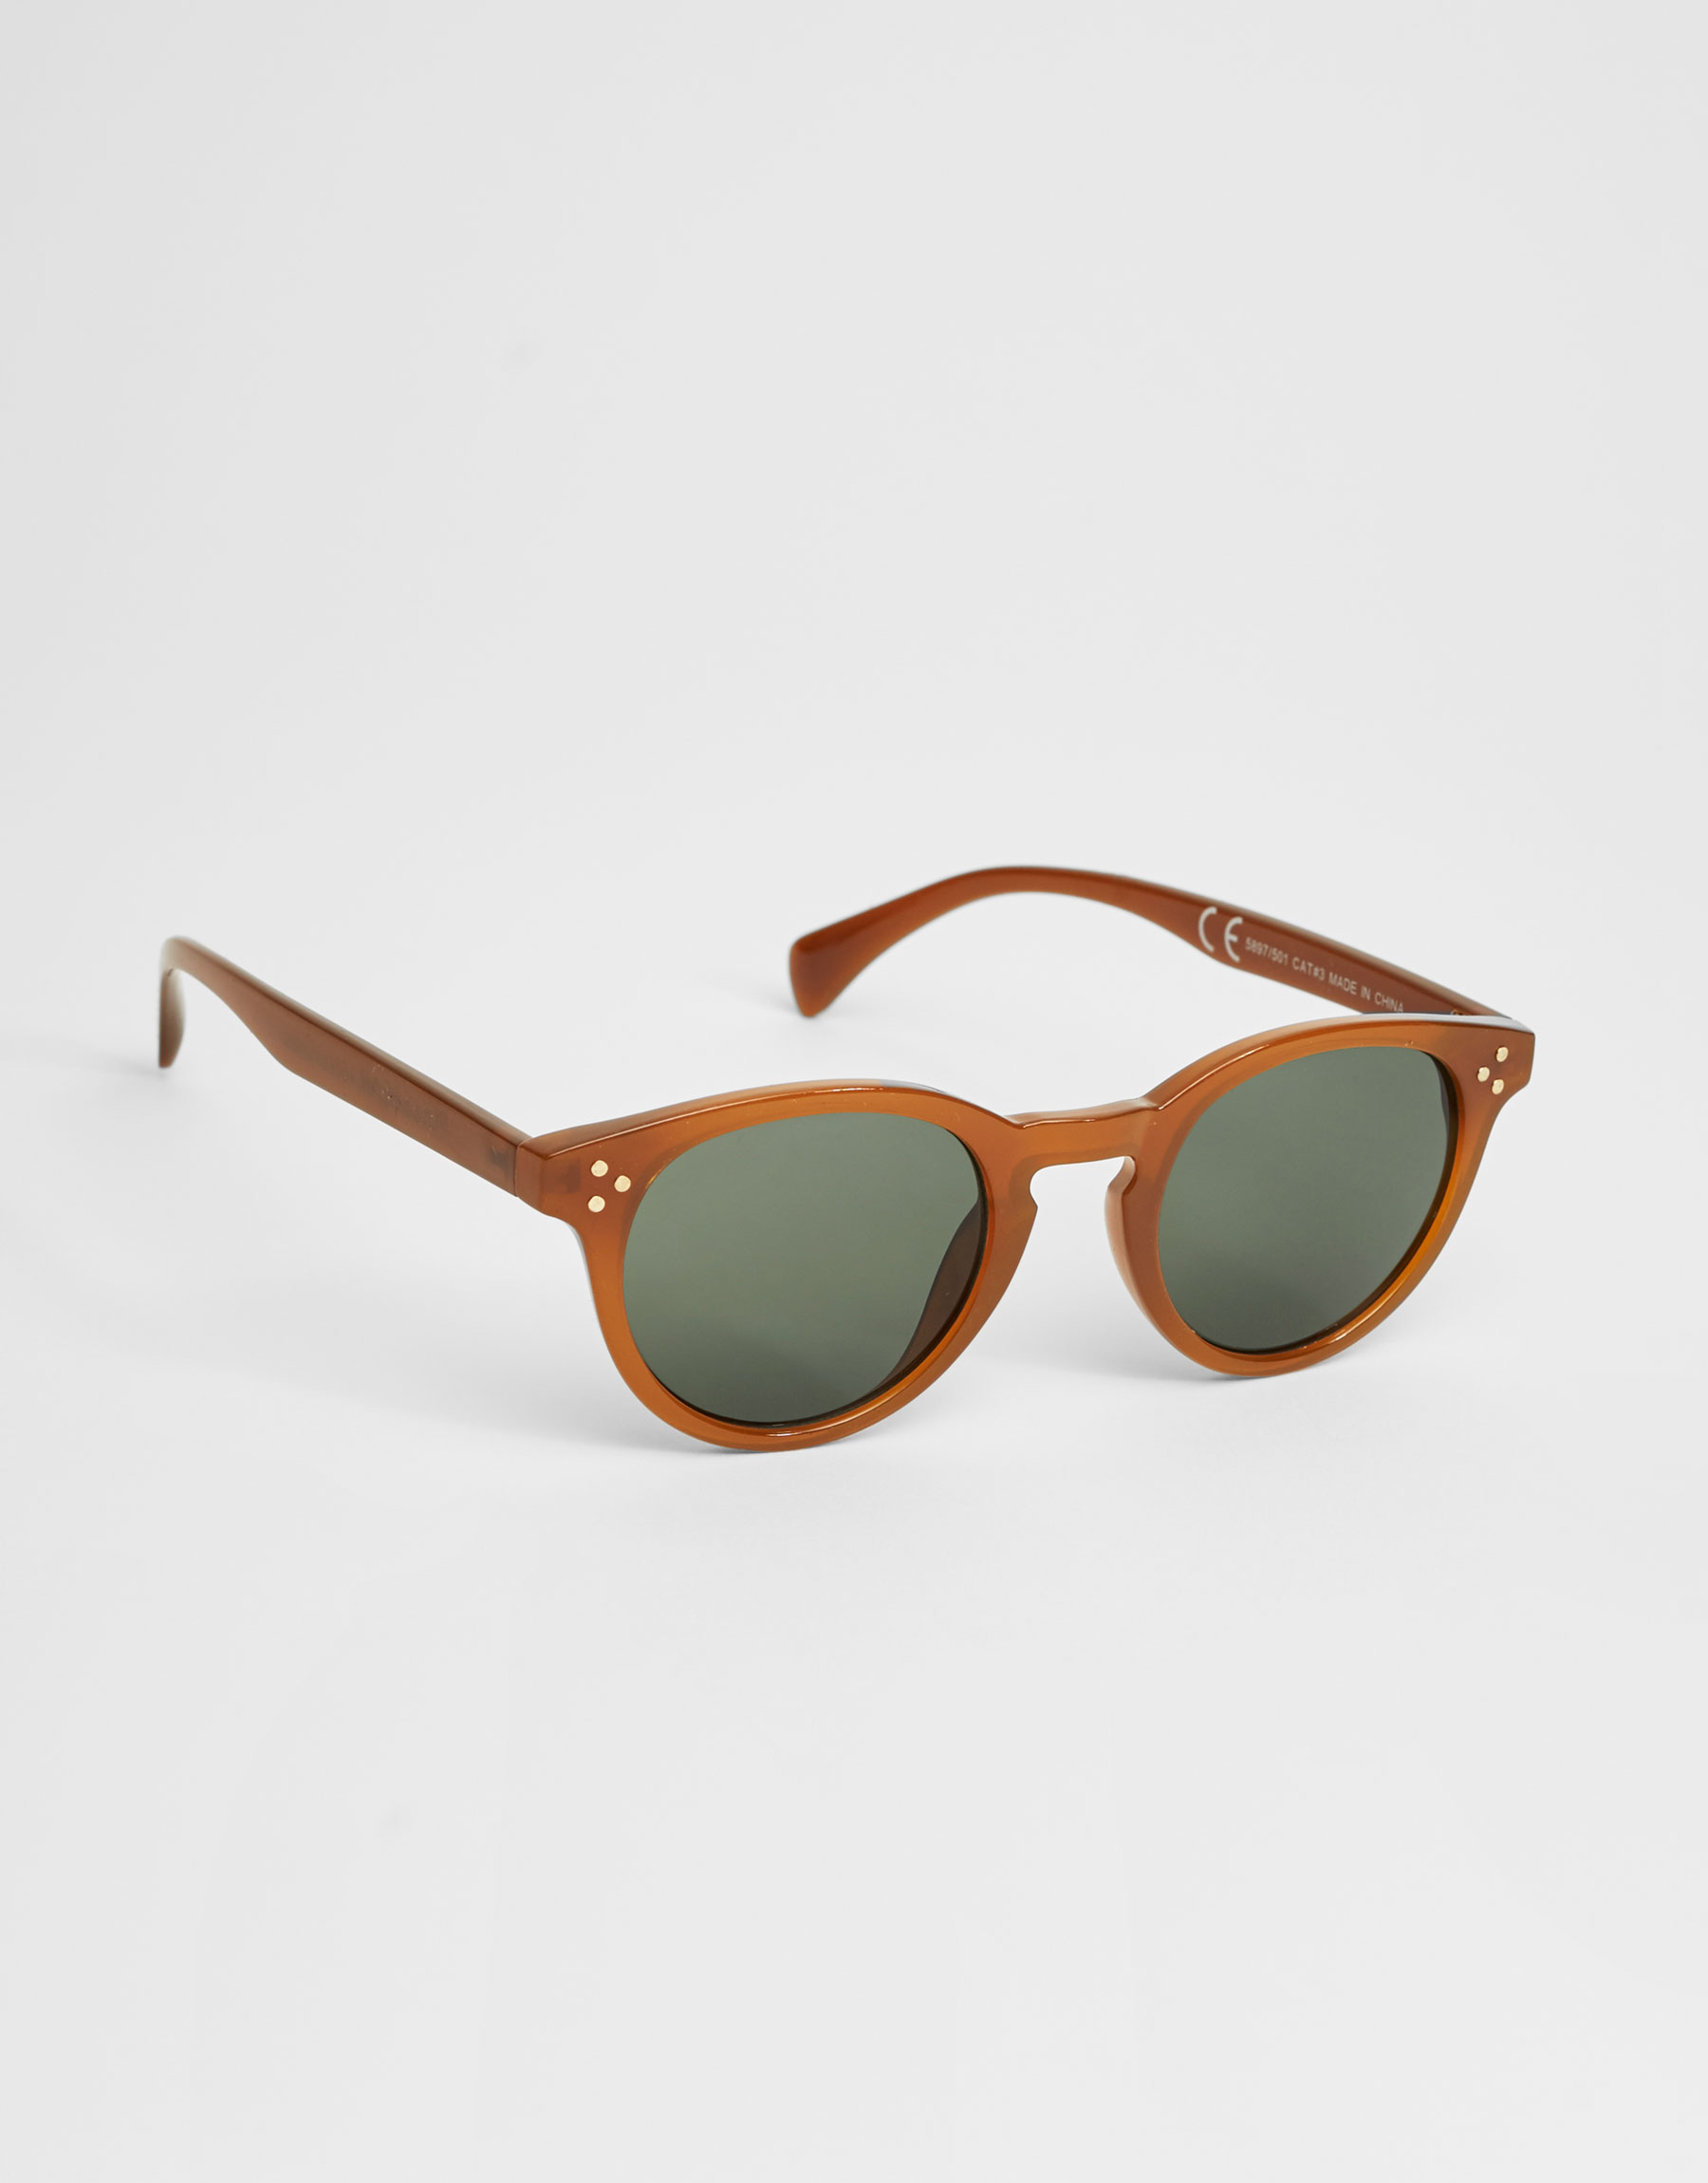 Coloured frame sunglasses